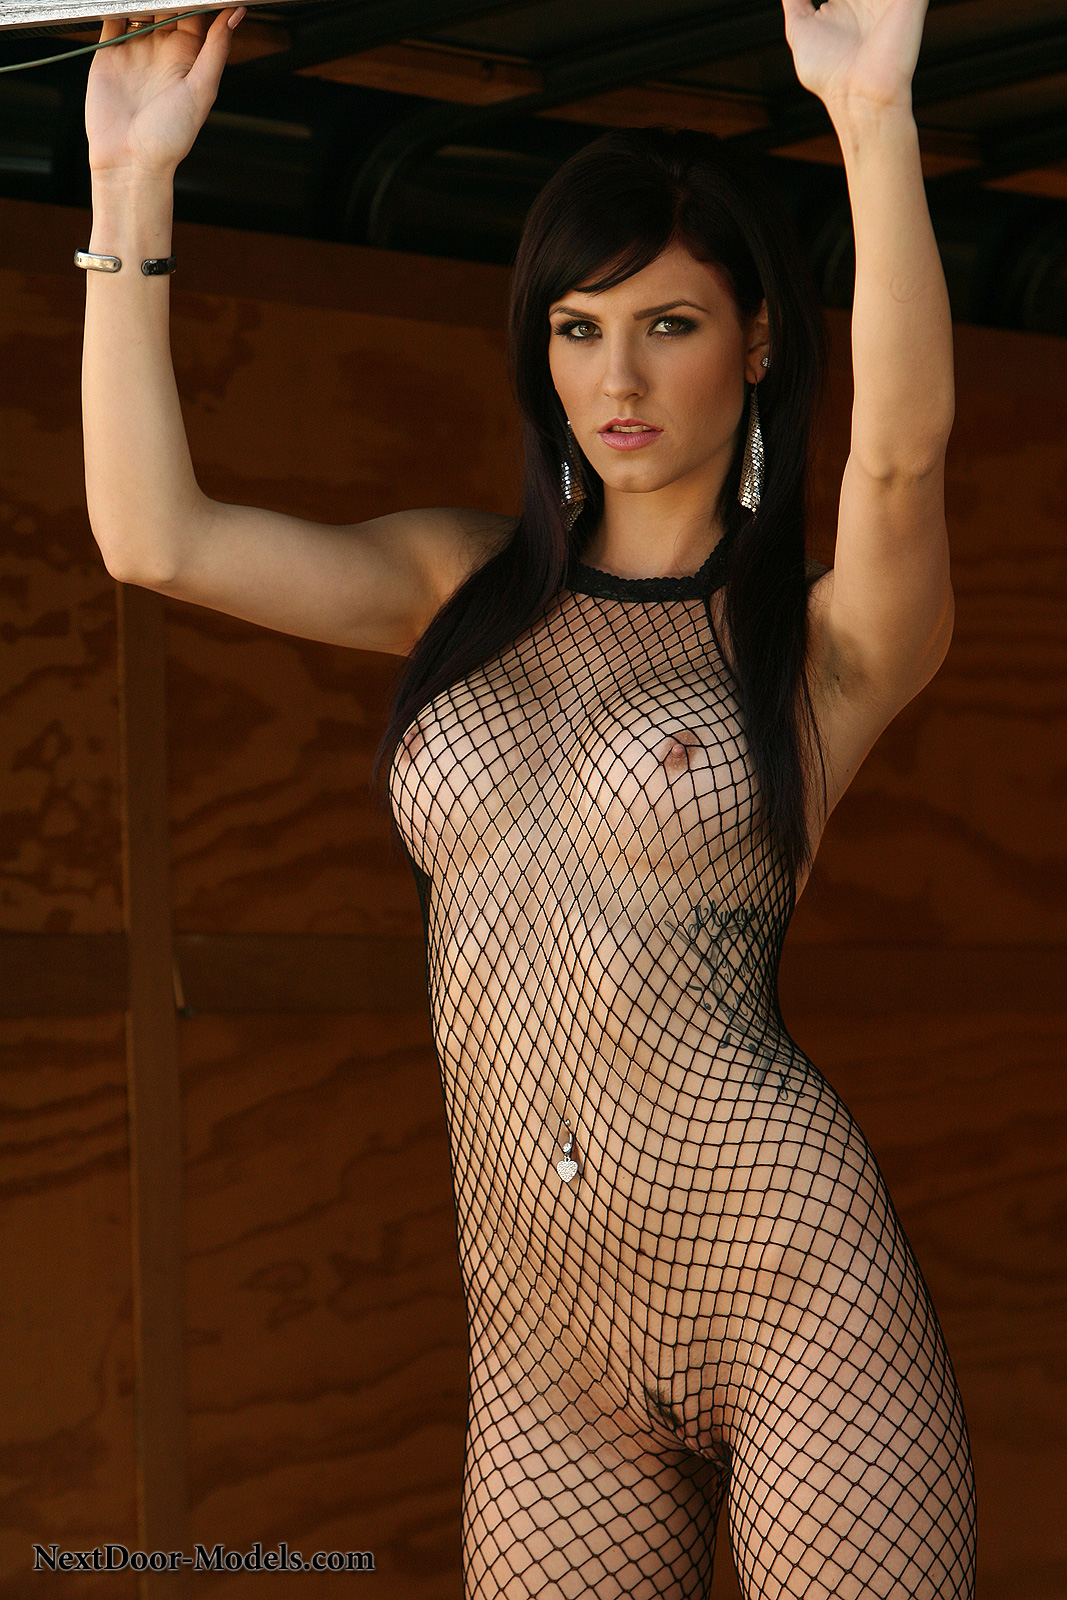 woman-naked-models-fishnets-wife